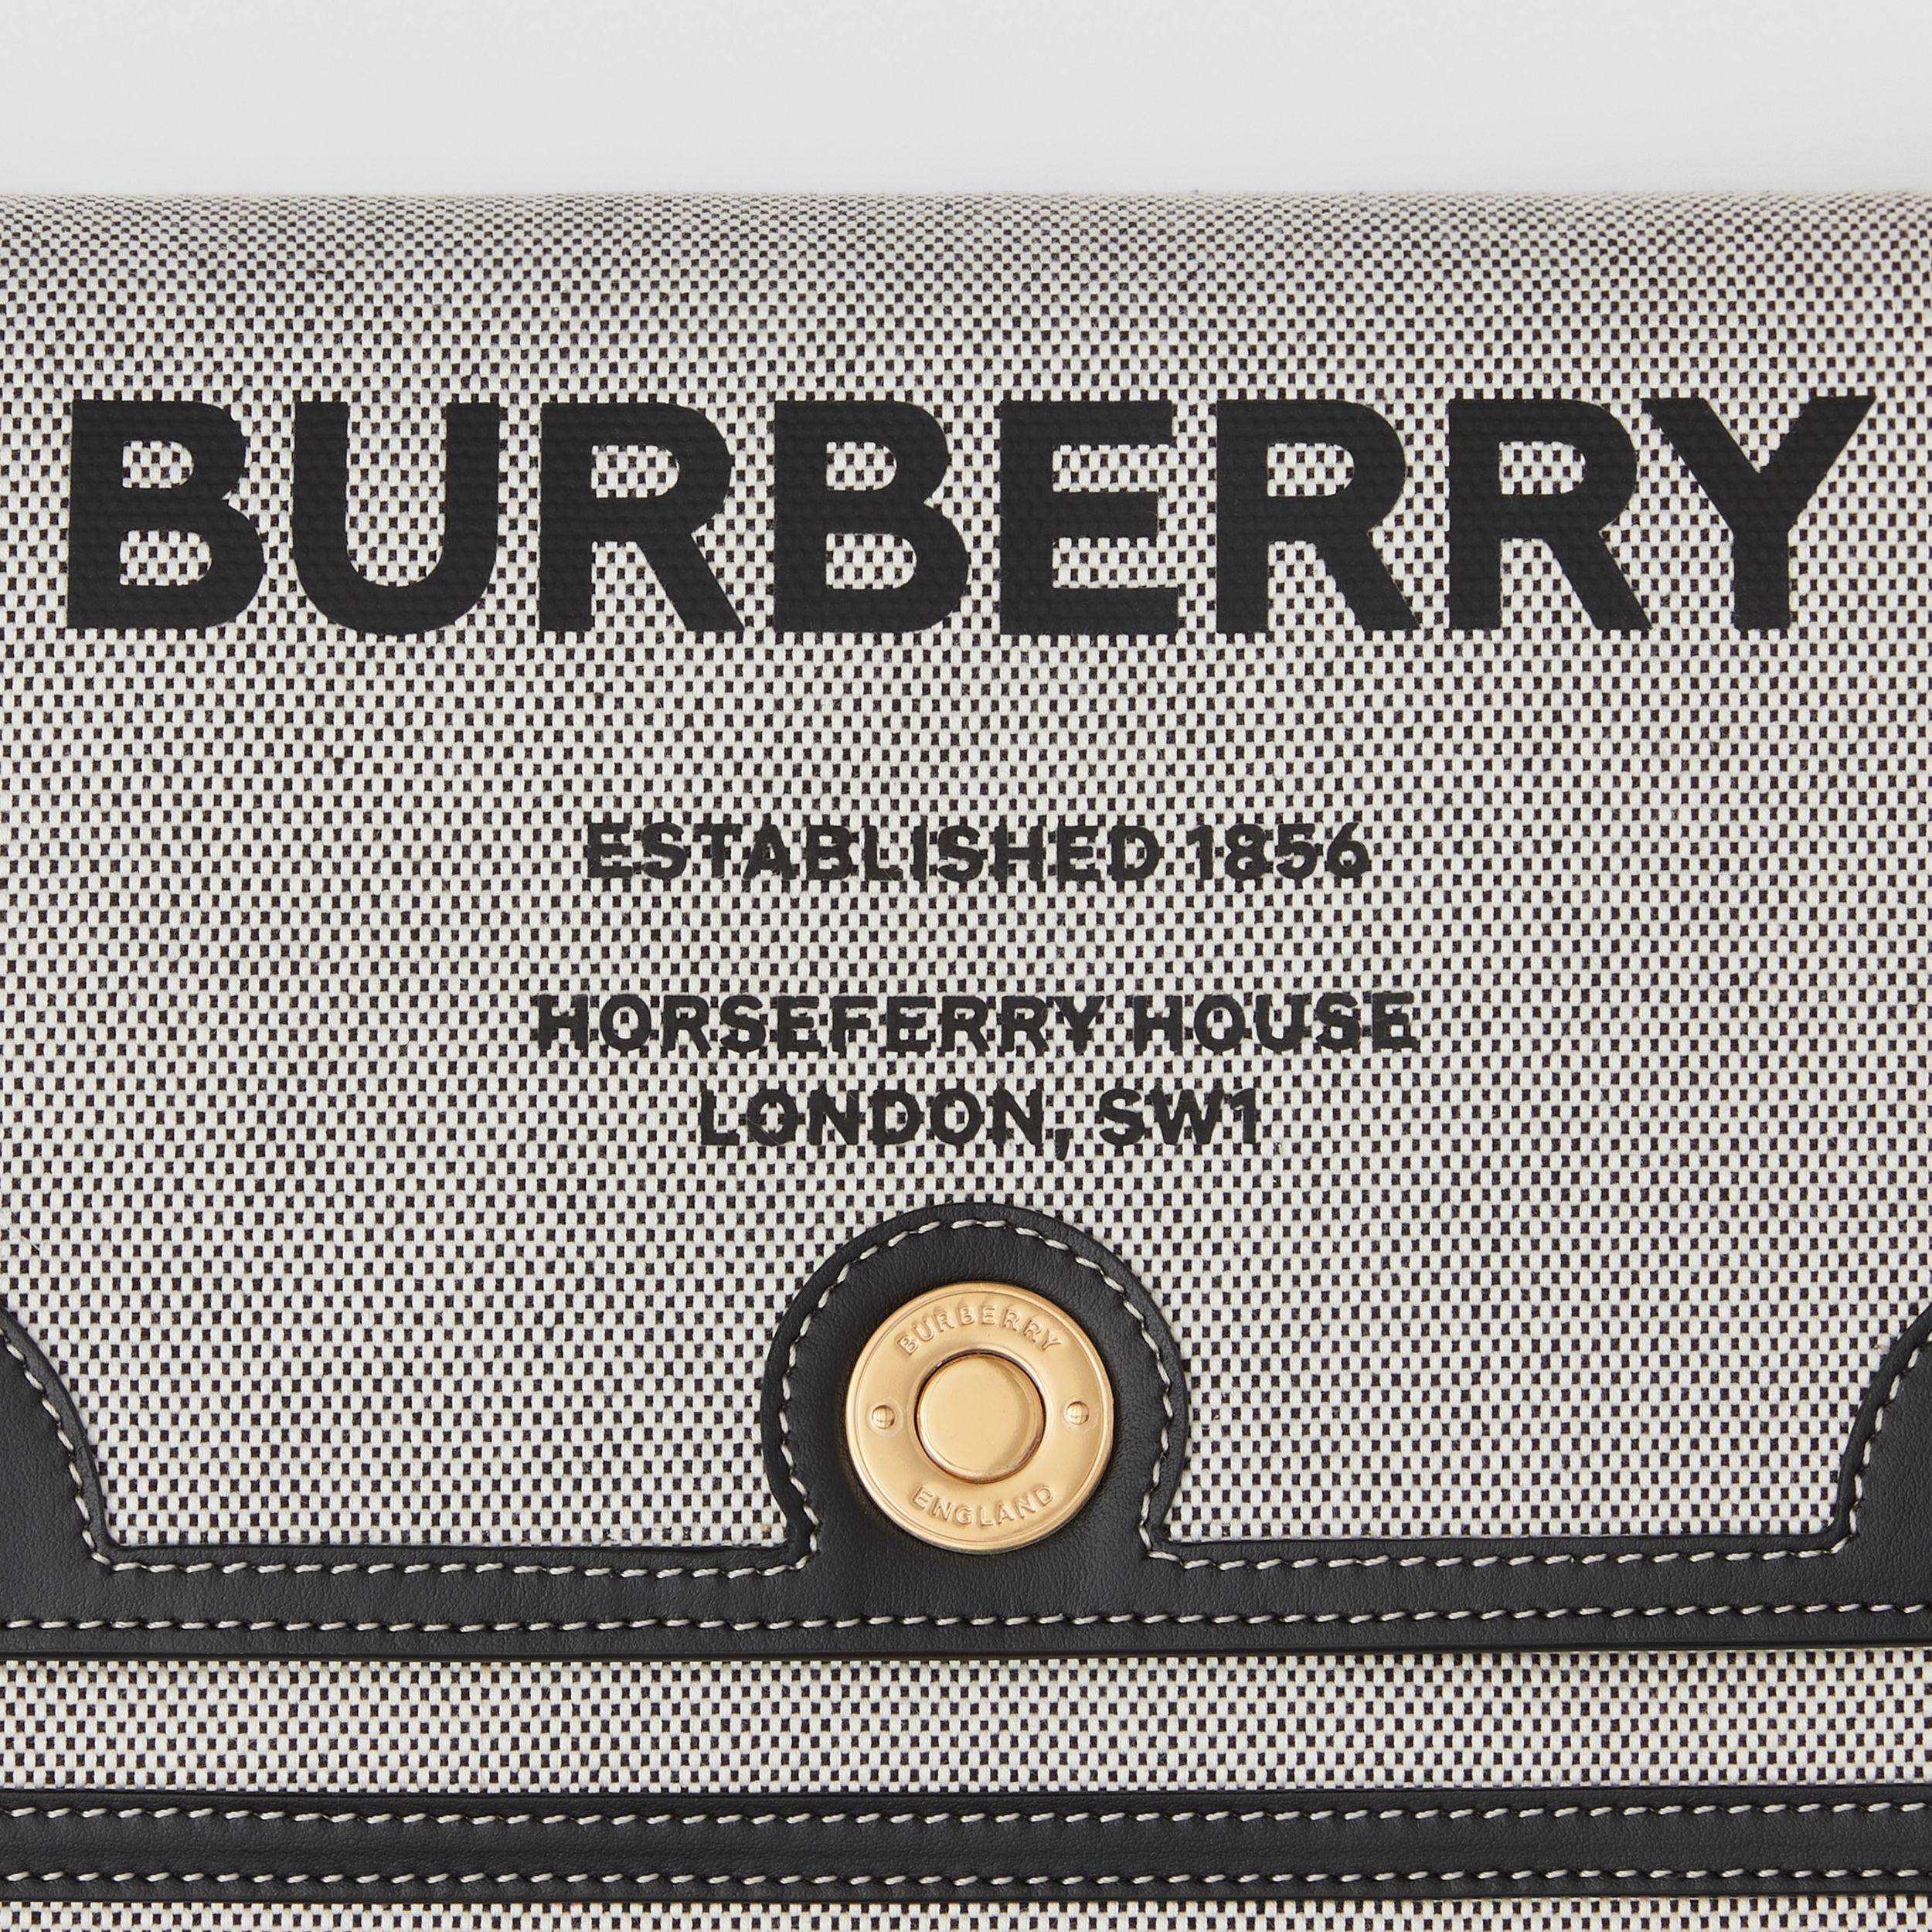 Horseferry Print Canvas Note Crossbody Bag in Black/black/tan - Women | Burberry - 2